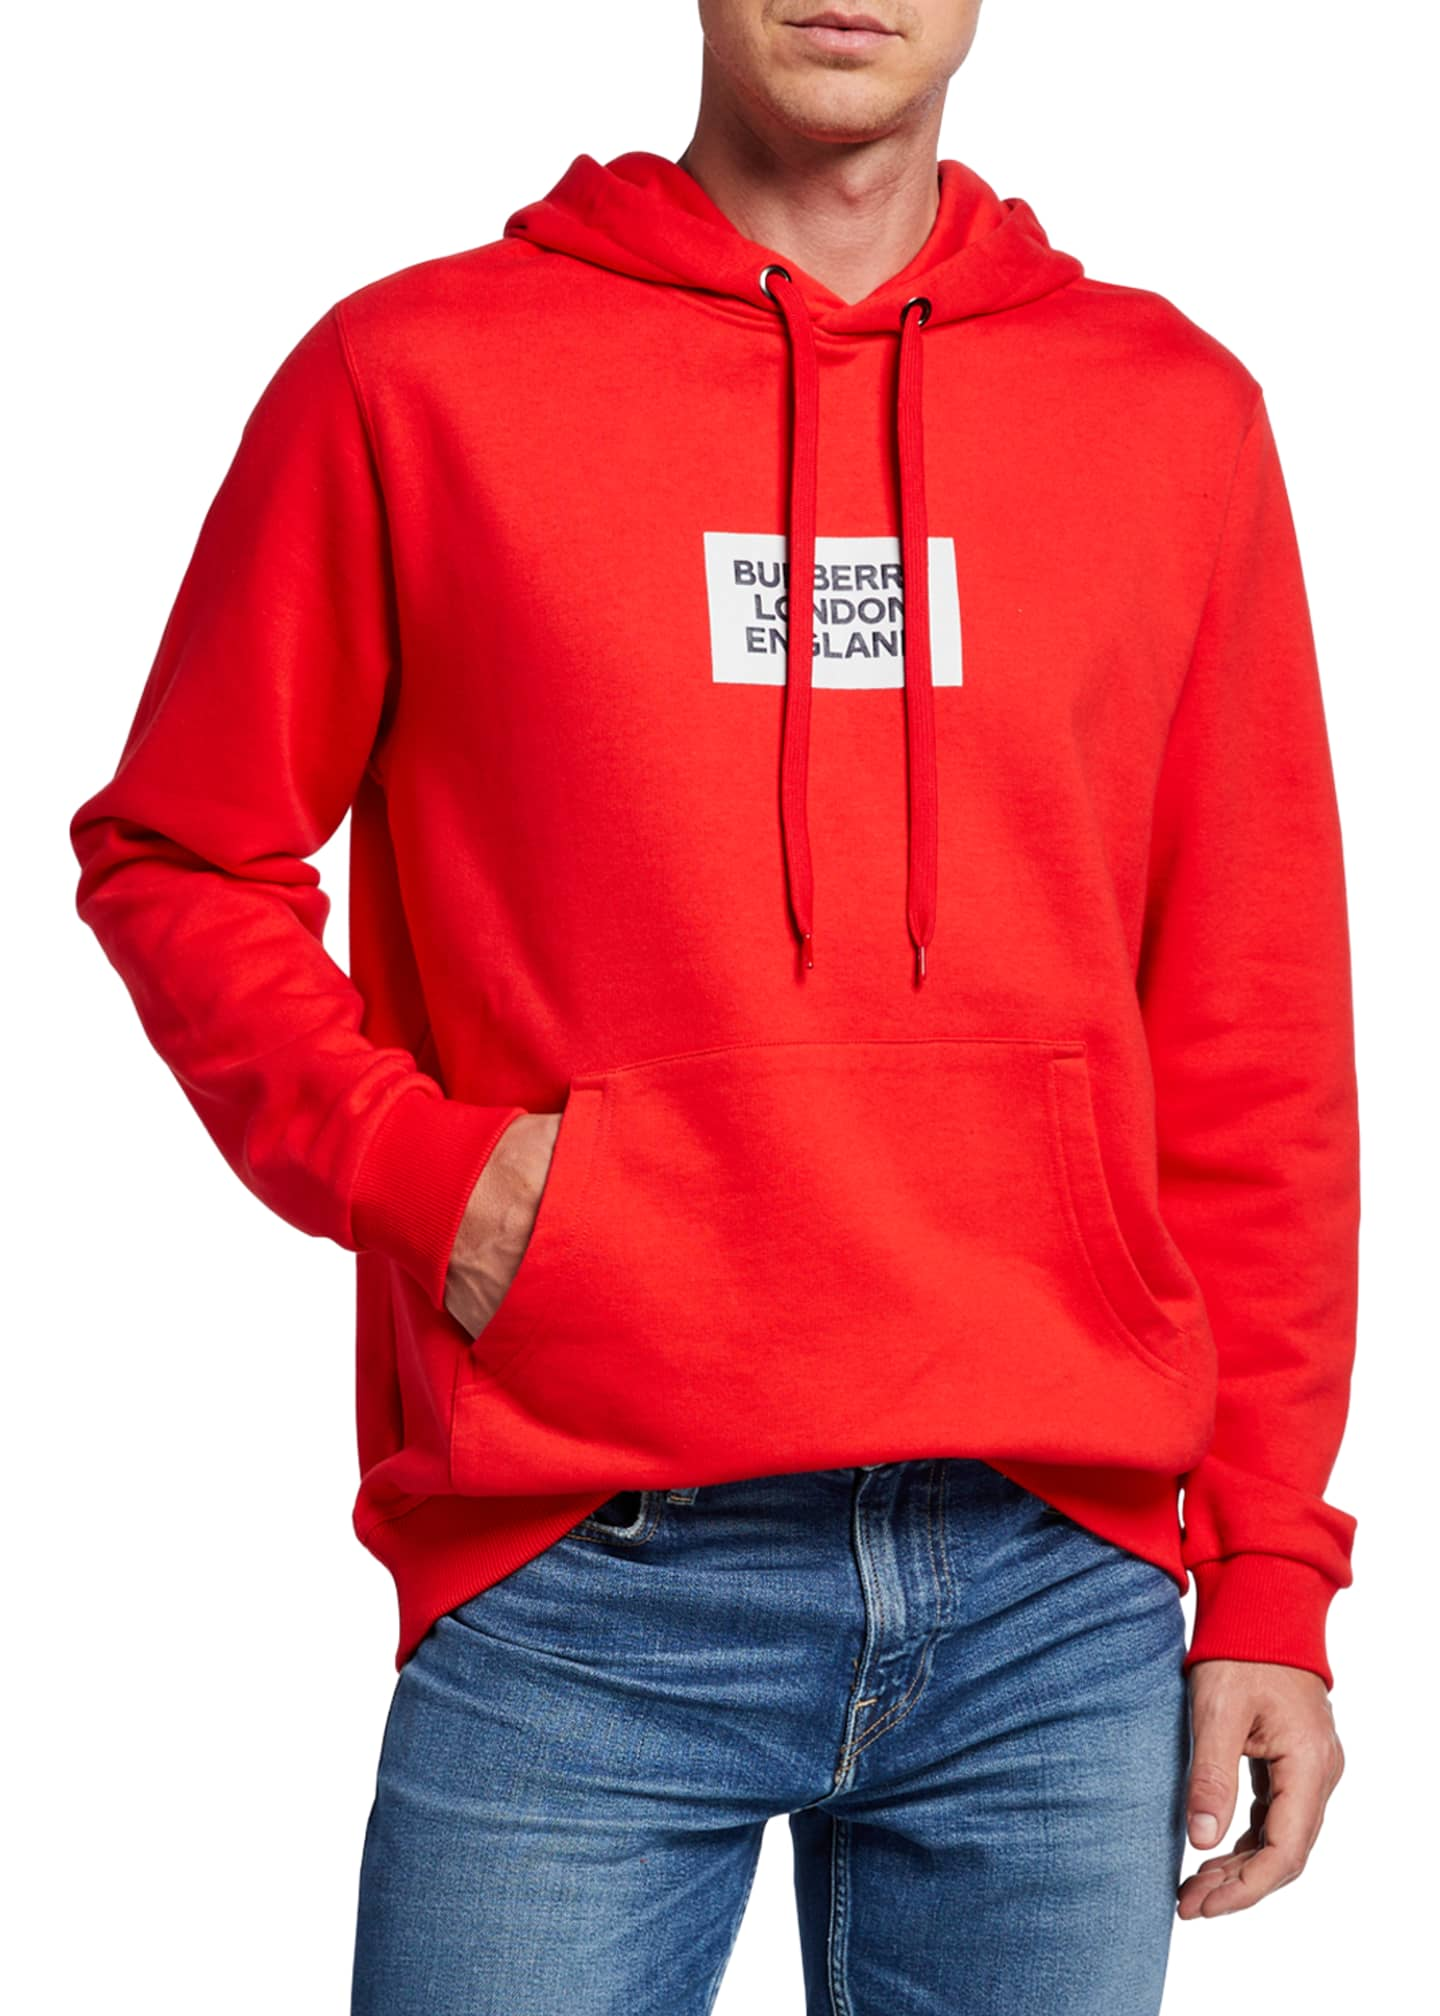 Burberry Men's Farrows Logo Hoodie Sweatshirt